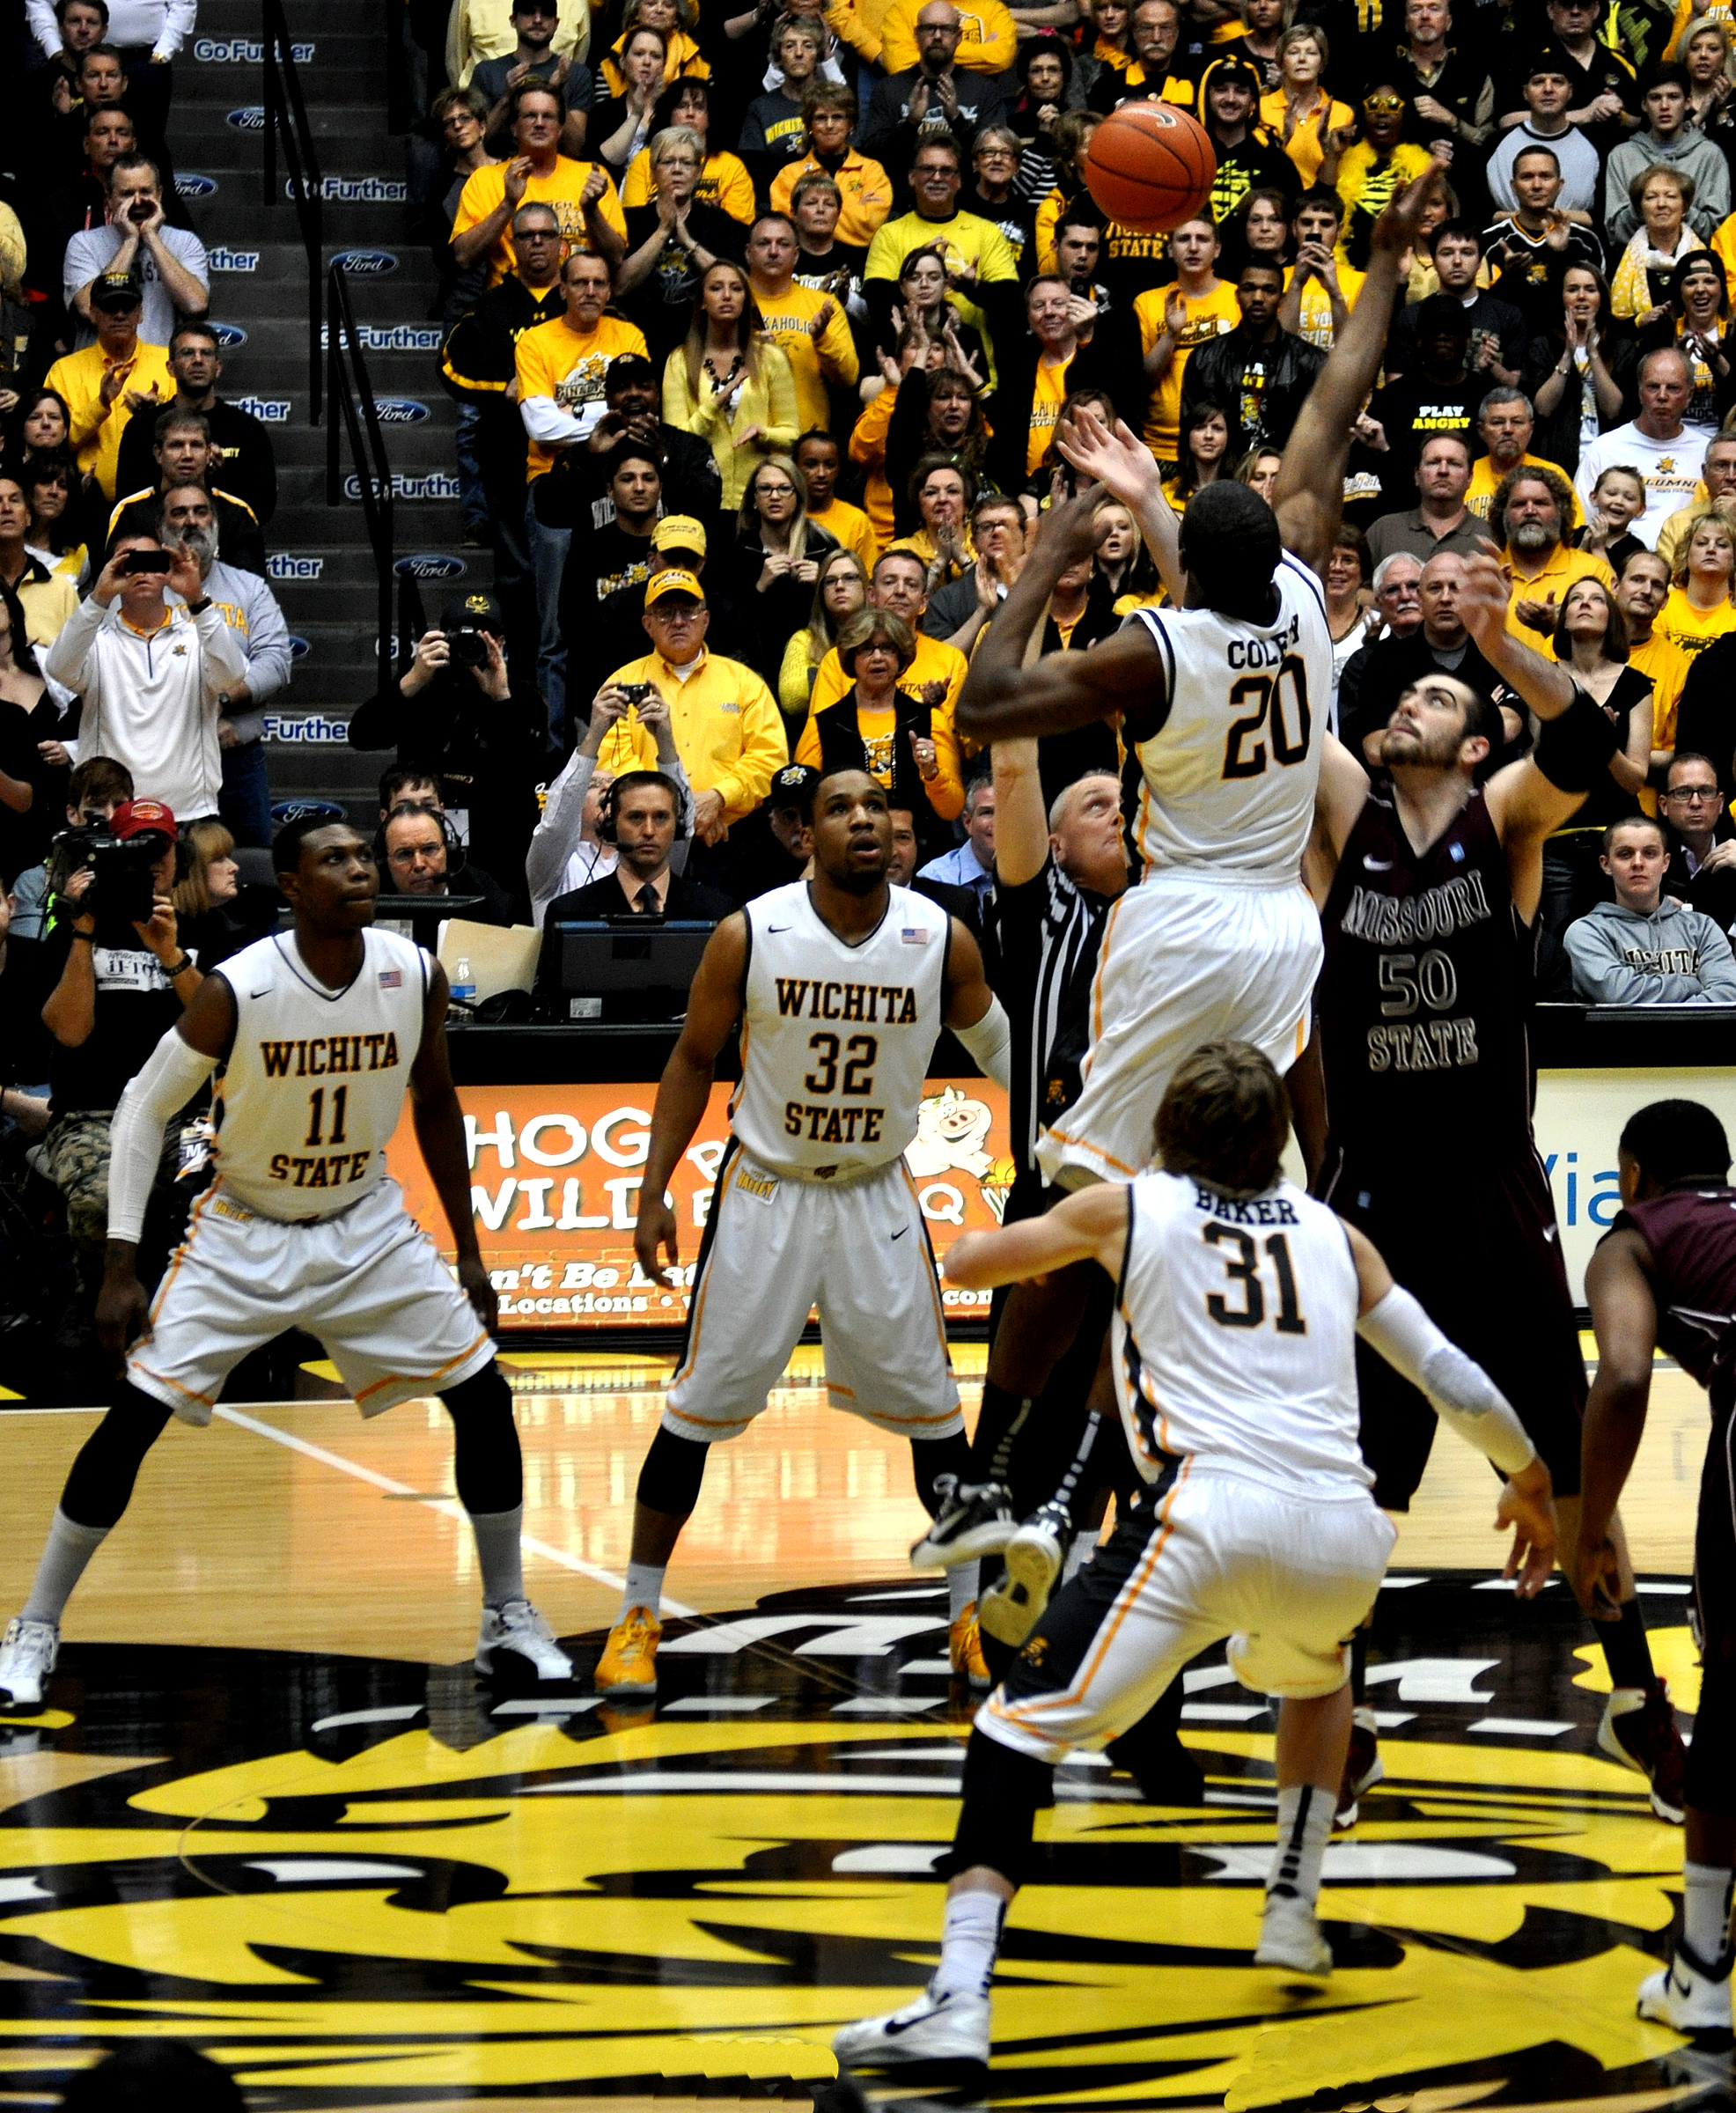 Wichita State University Basketball has a perfect 31-0 season